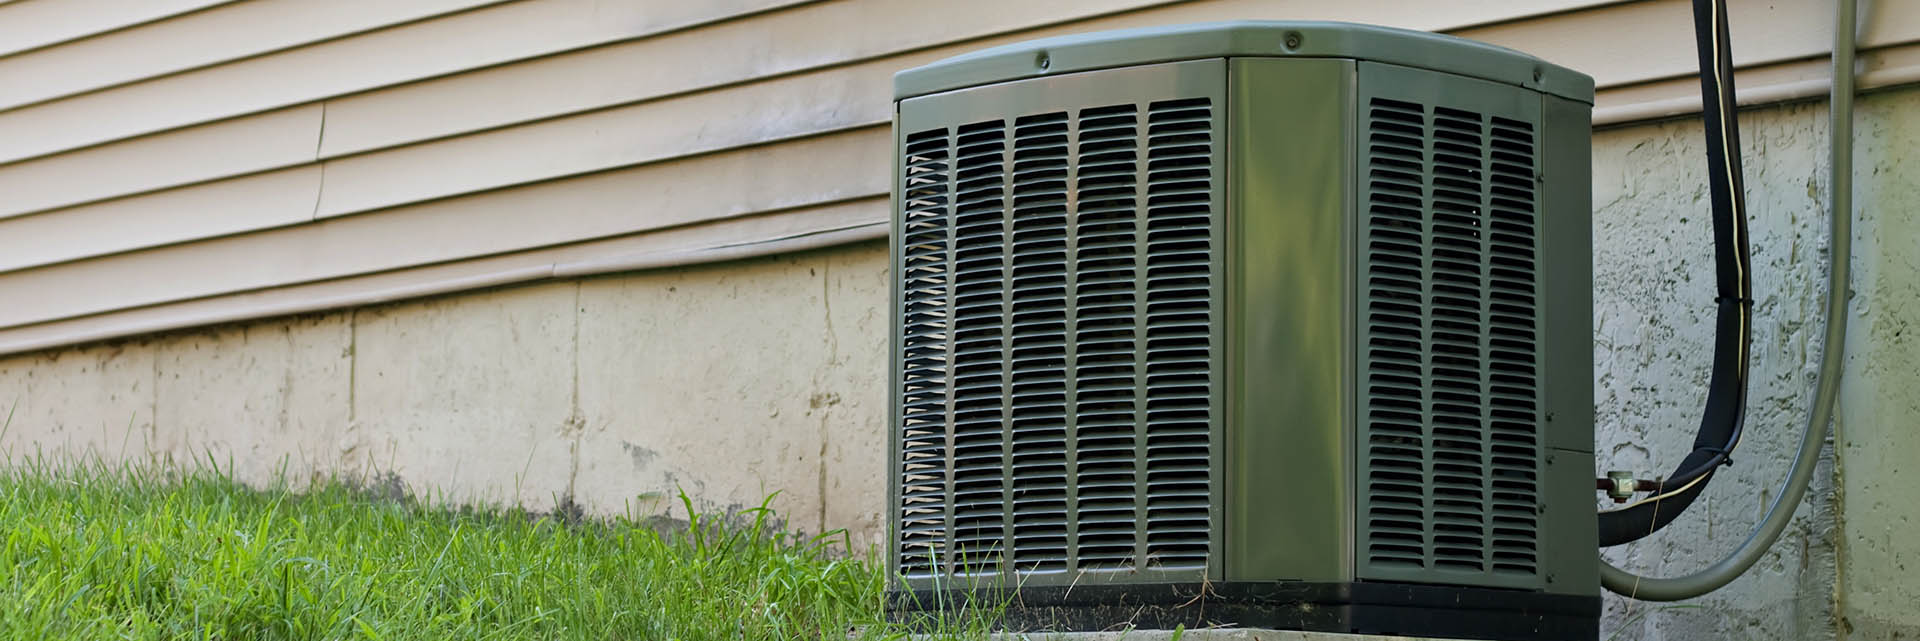 Home Inspection HVAC